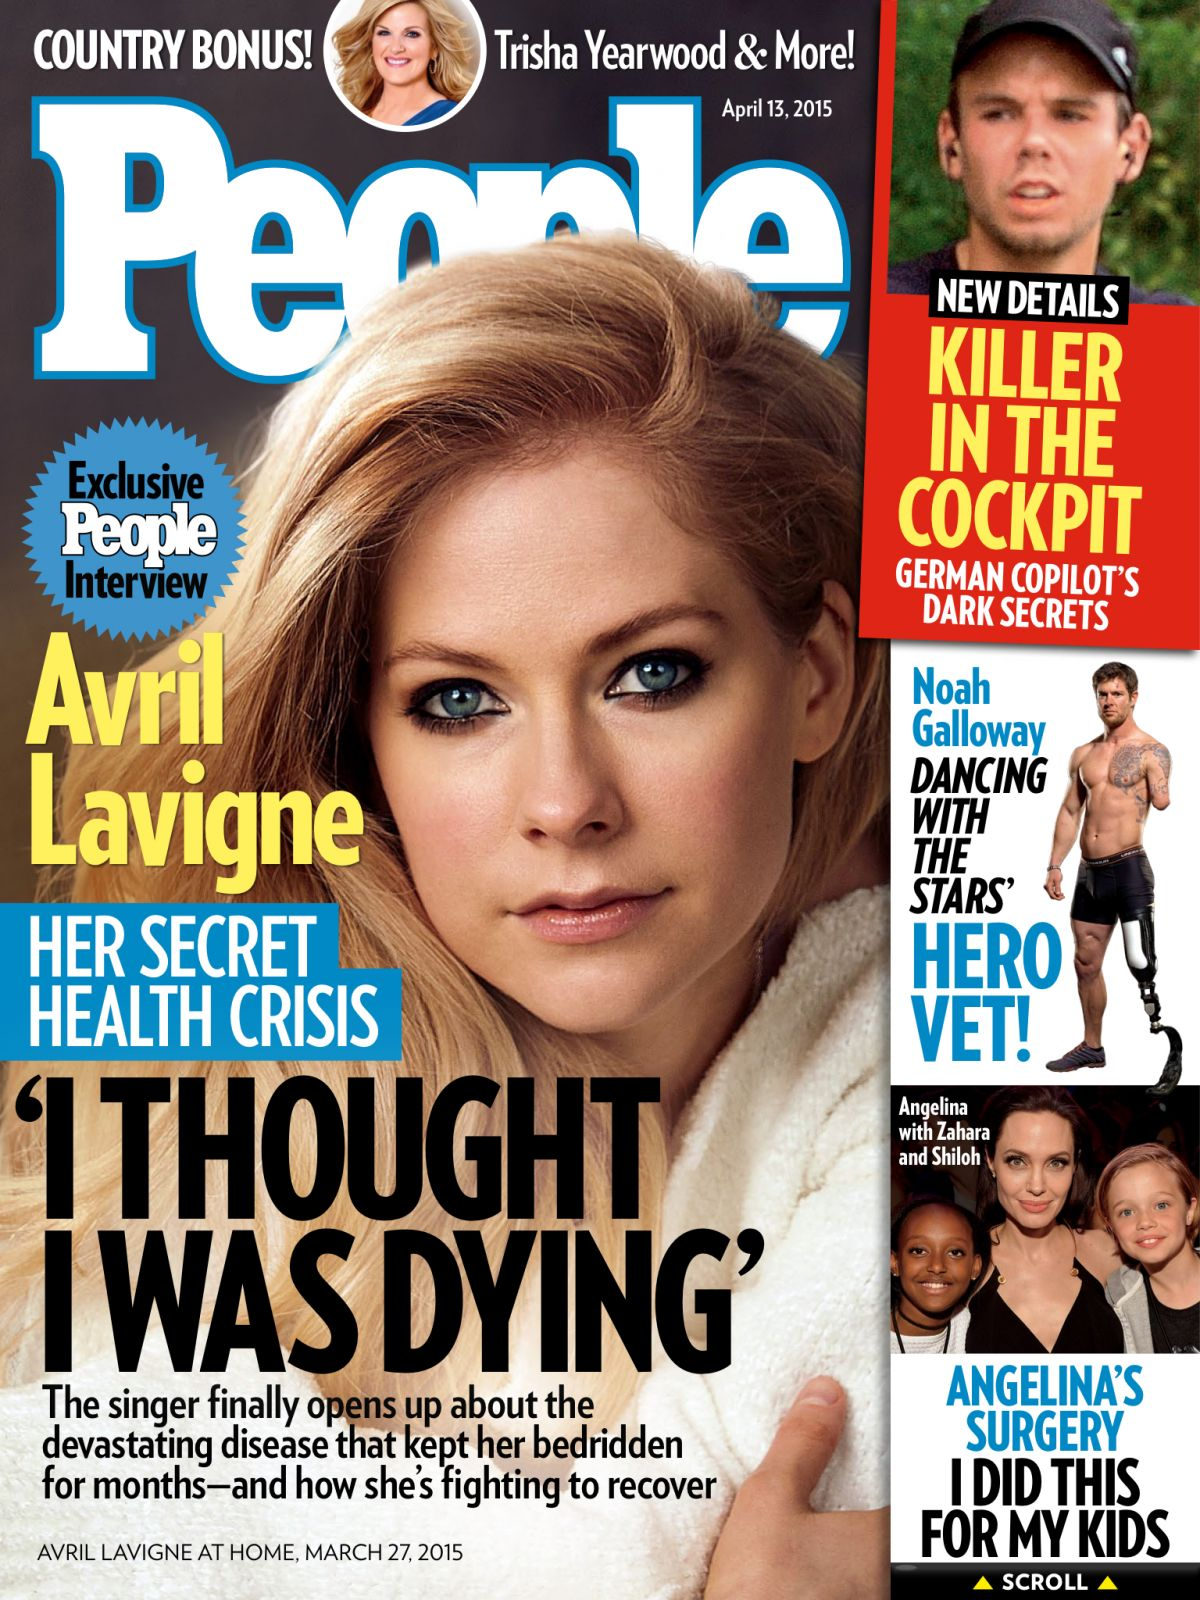 AVRIL LAVIGNE in People Magazine, April 2015 Issue